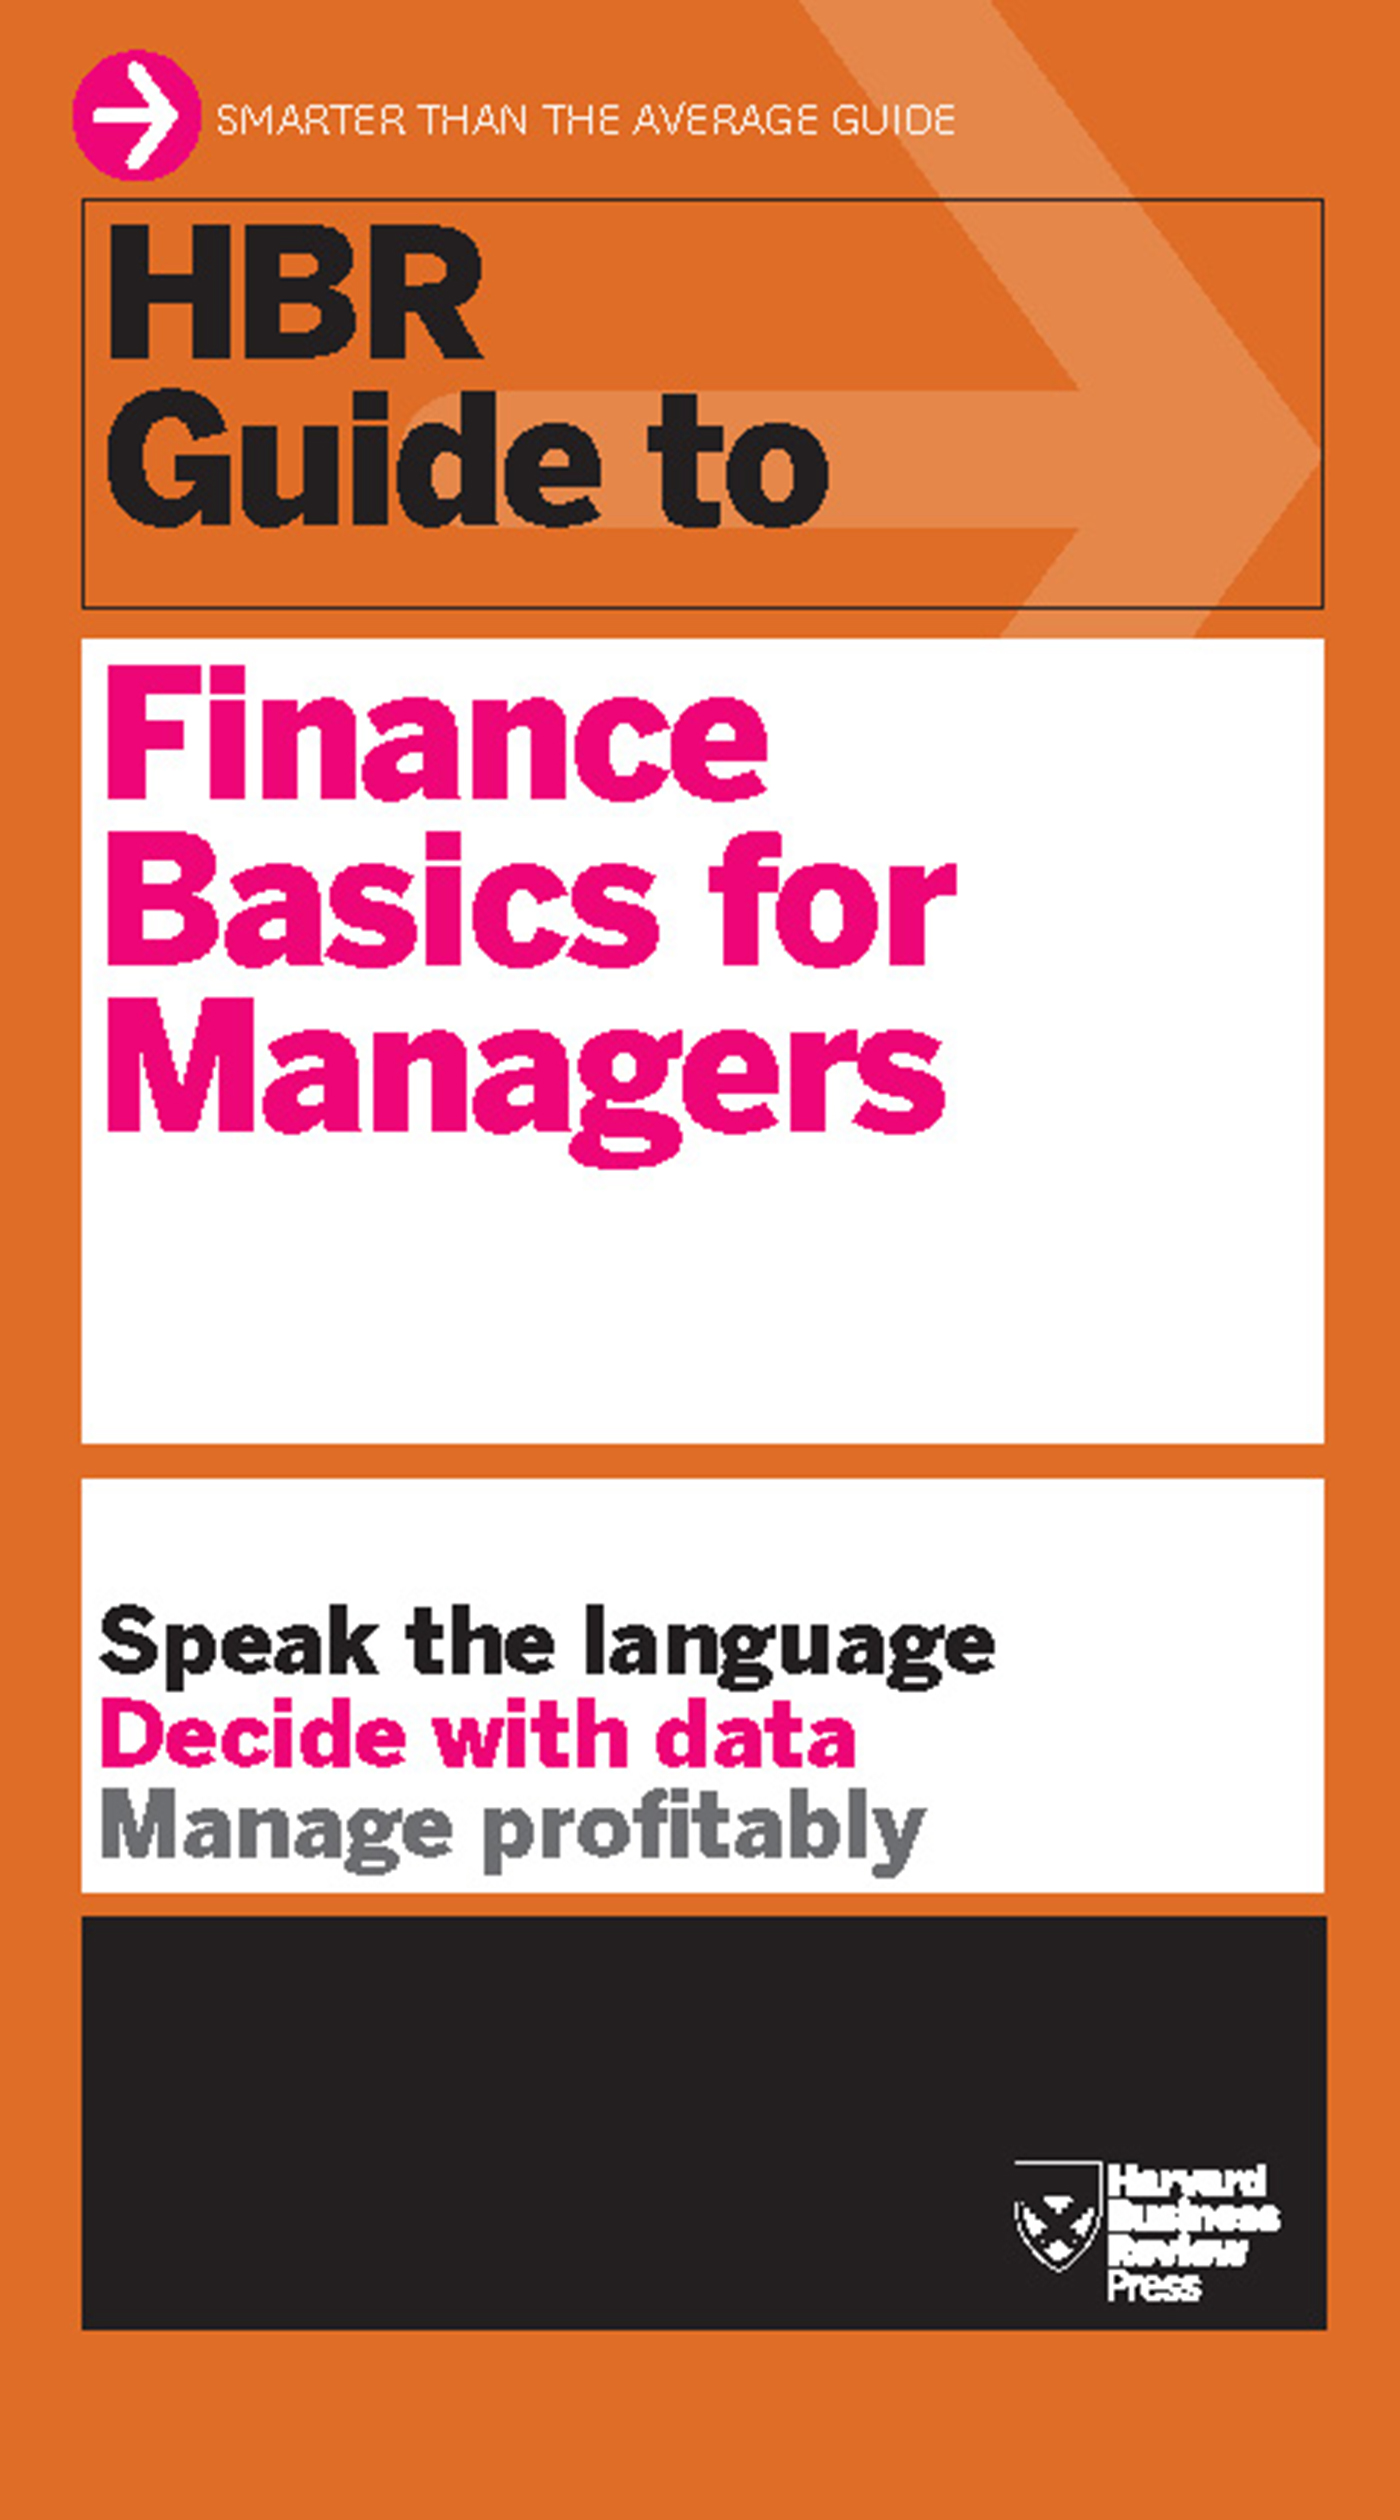 HBR Guide to Finance Basics for Managers By: Harvard Business Review